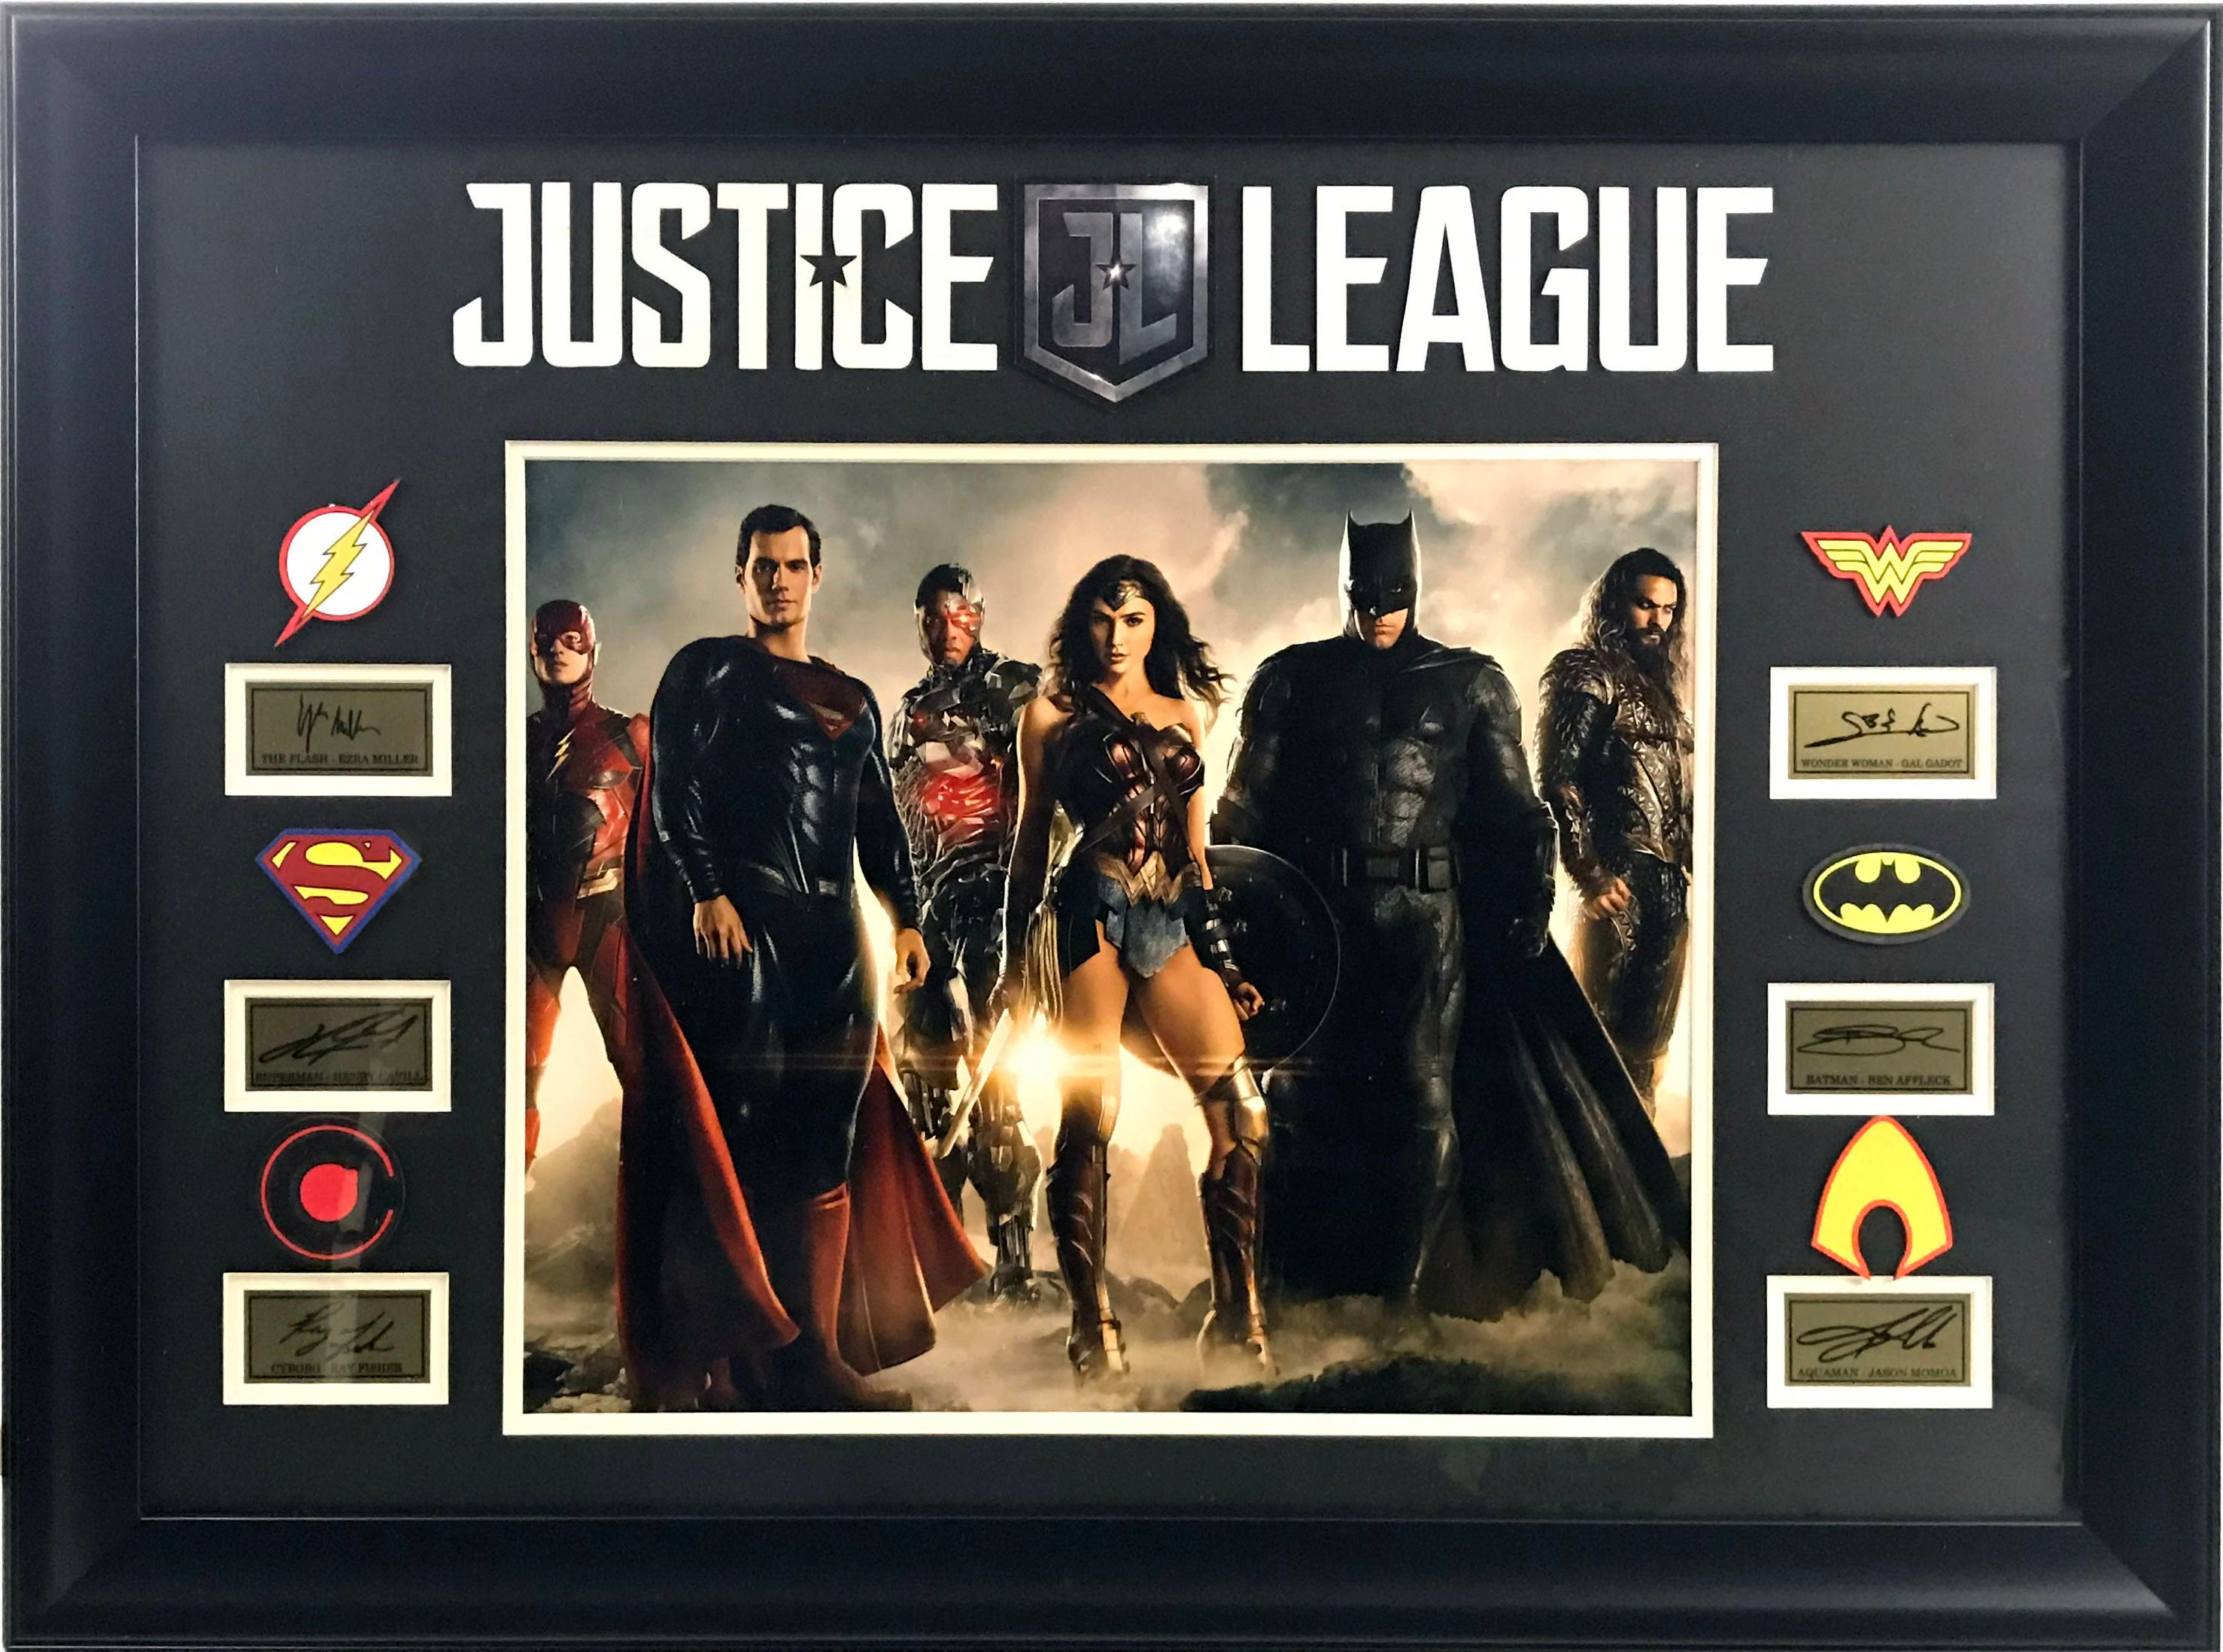 Justice League Framed Photo with Laser Signatures